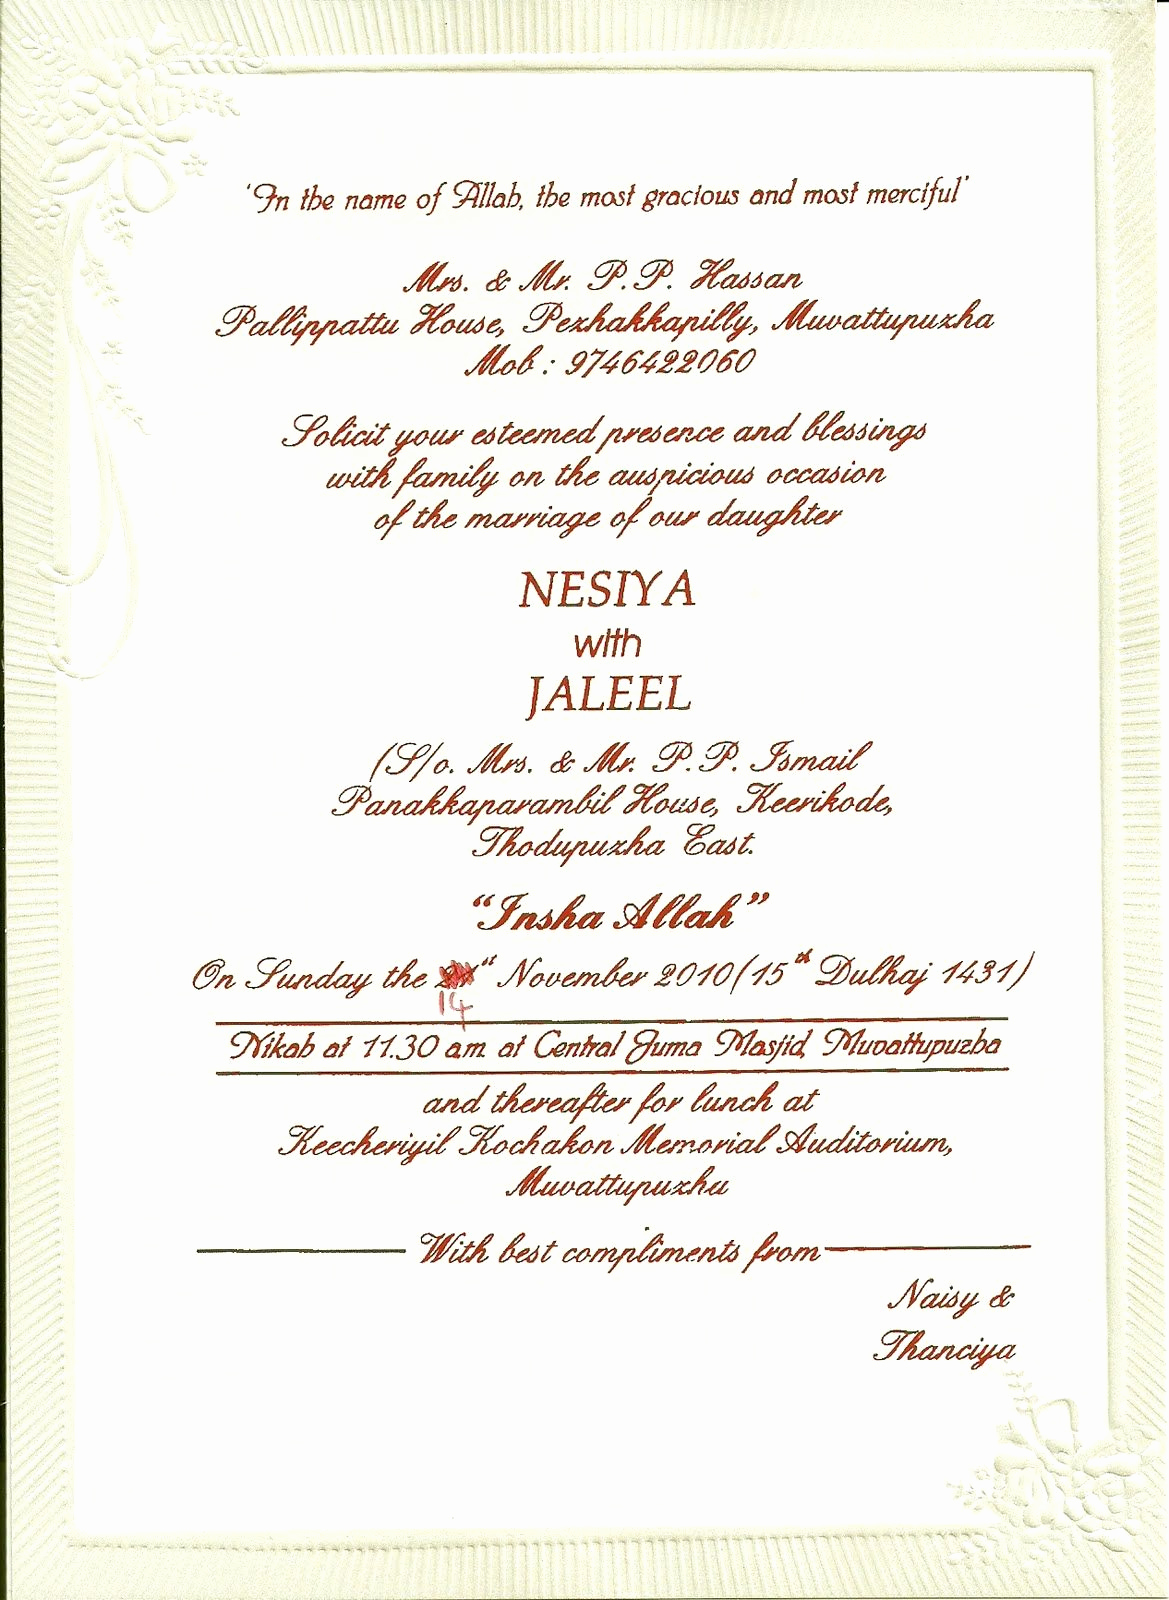 Christian Wedding Invitation Wording Elegant Image Result for Muslim Wedding Invitation Cards In Kerala